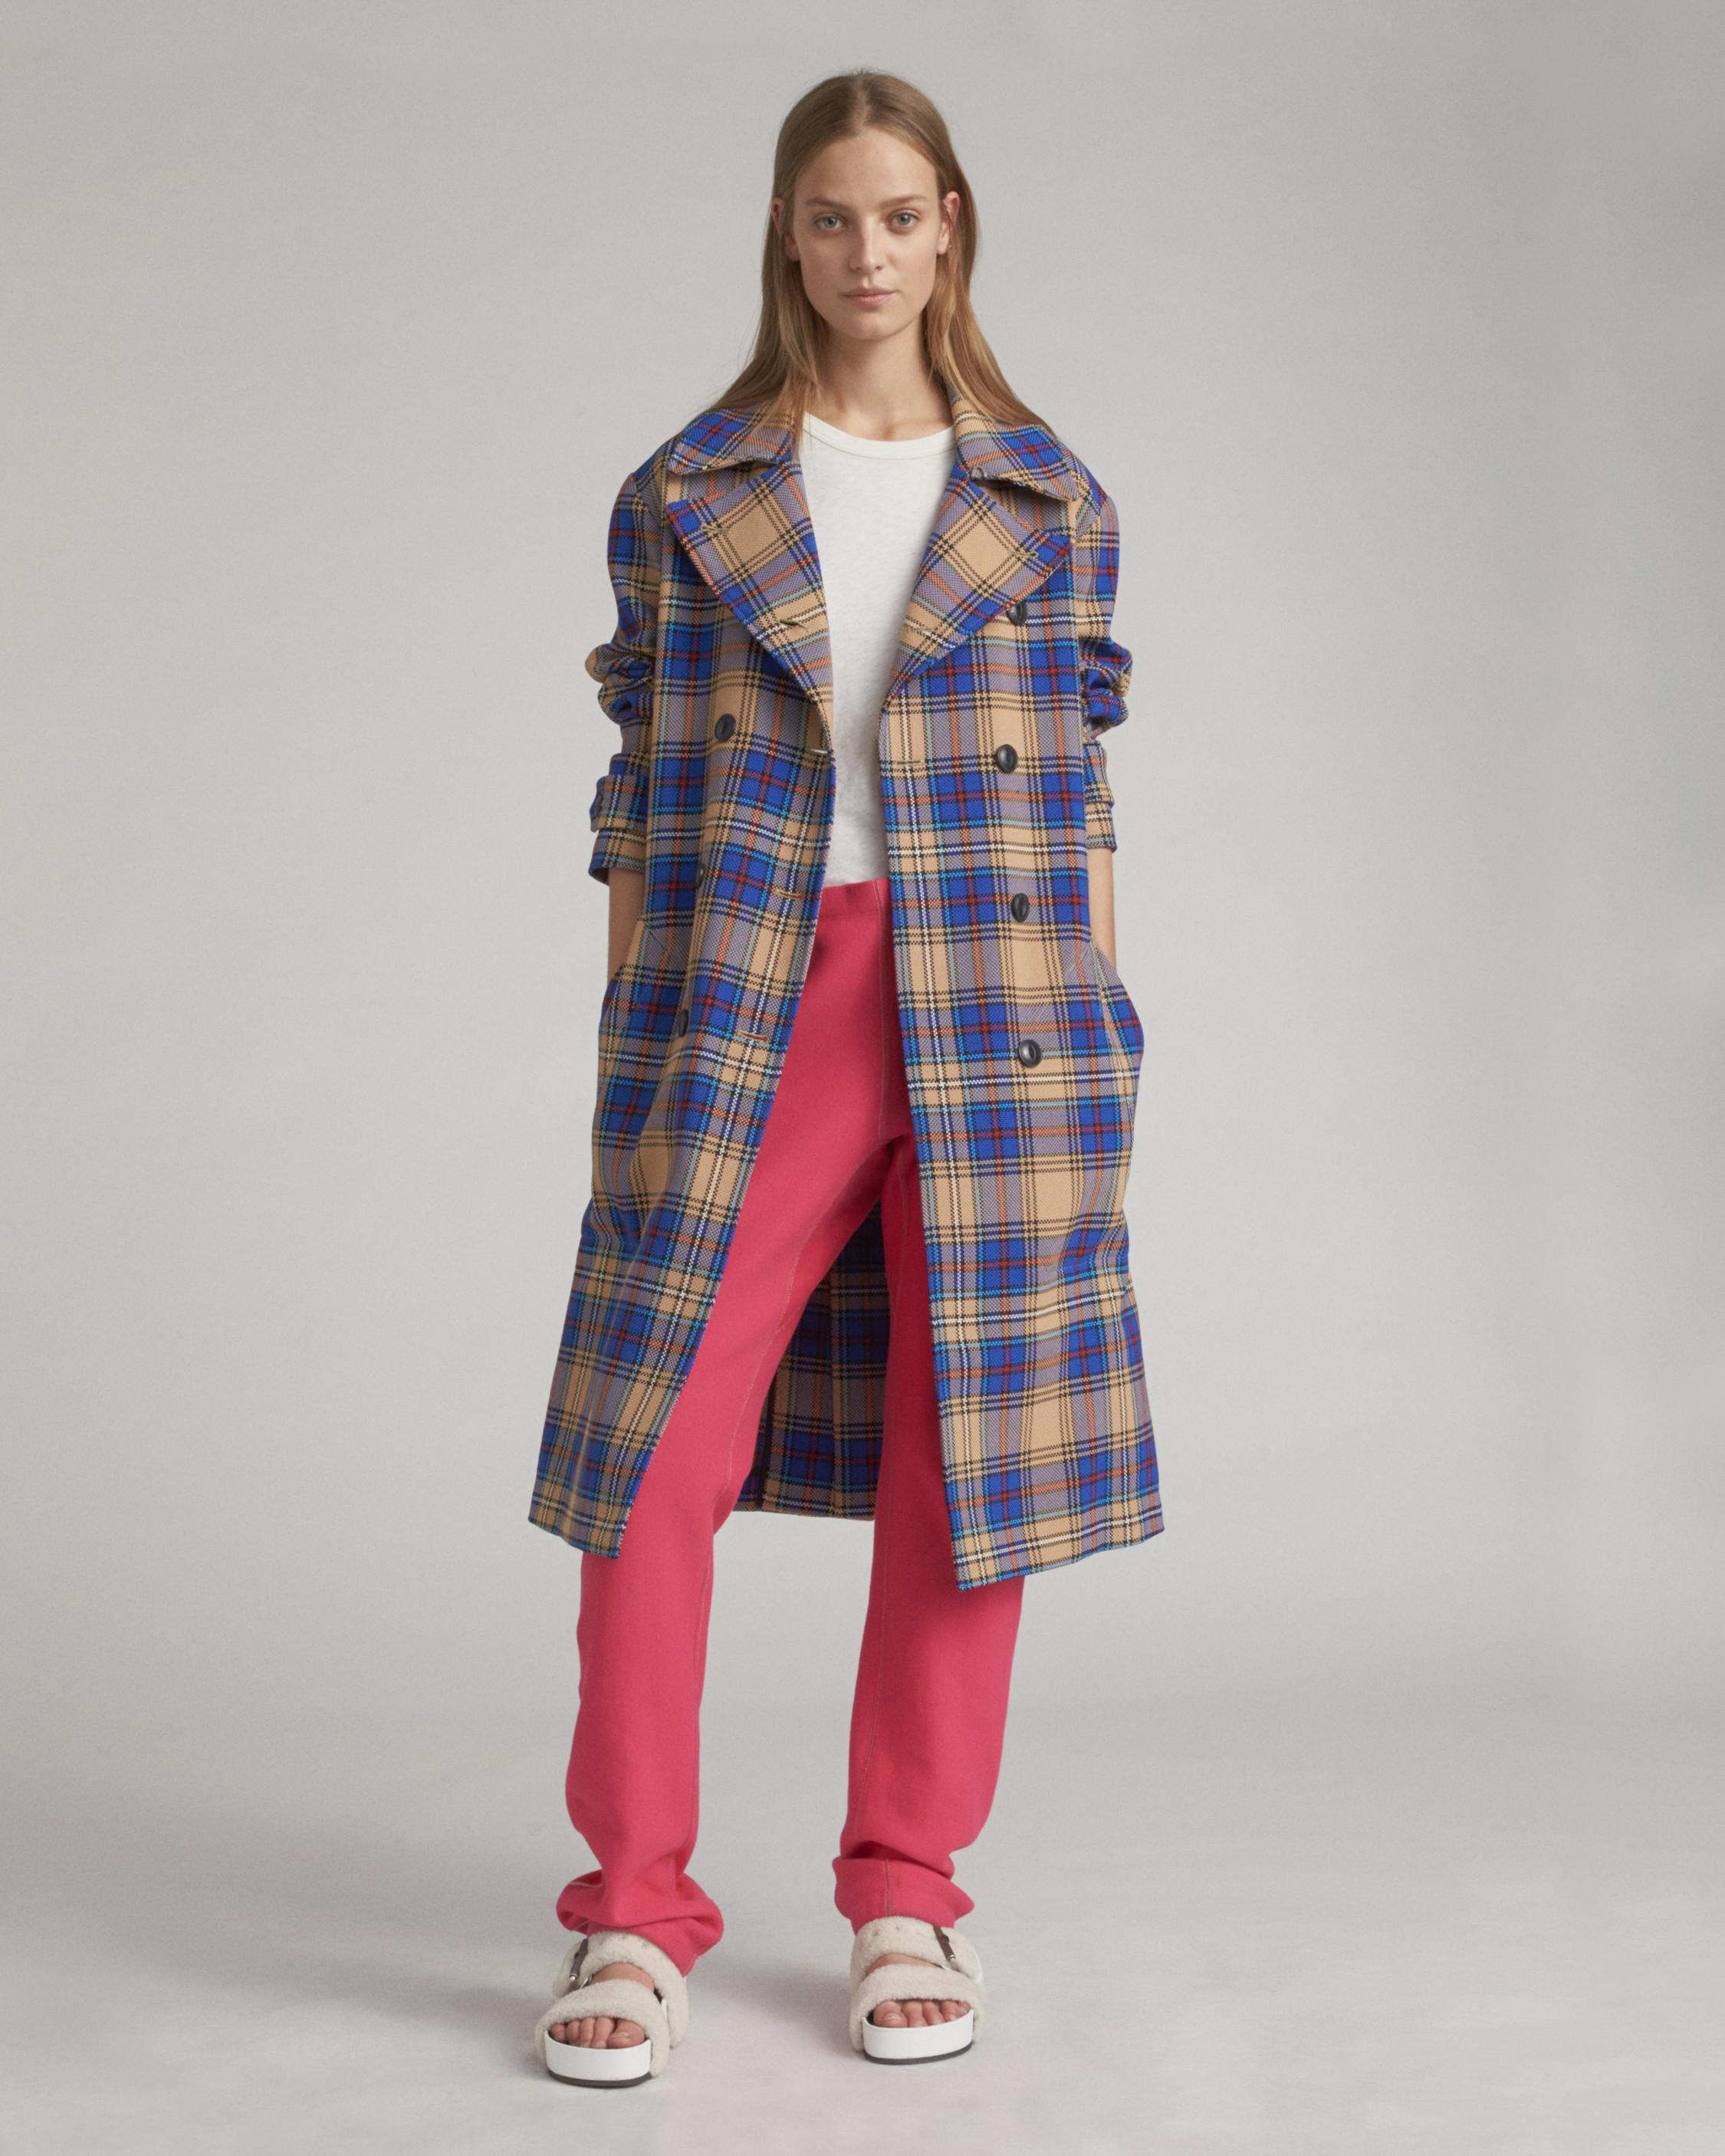 Ace plaid trench coat